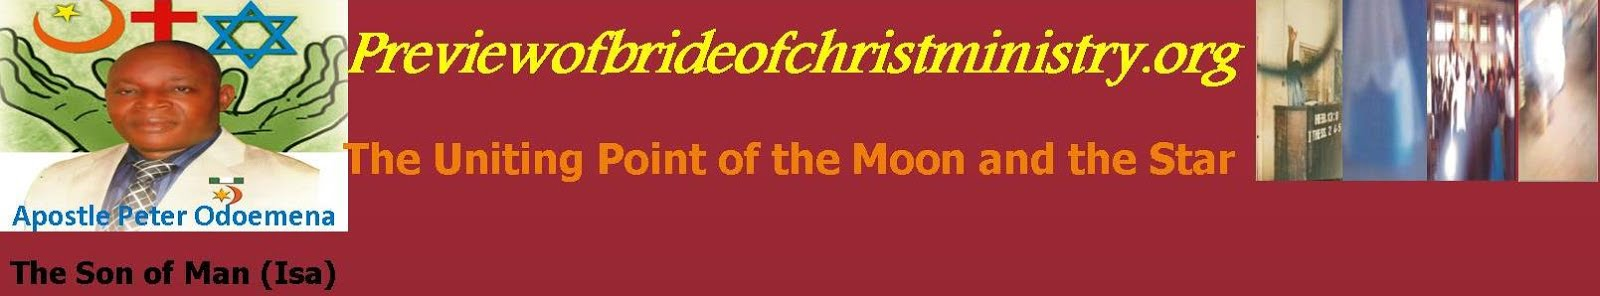 Preview of Bride of Christ Ministry